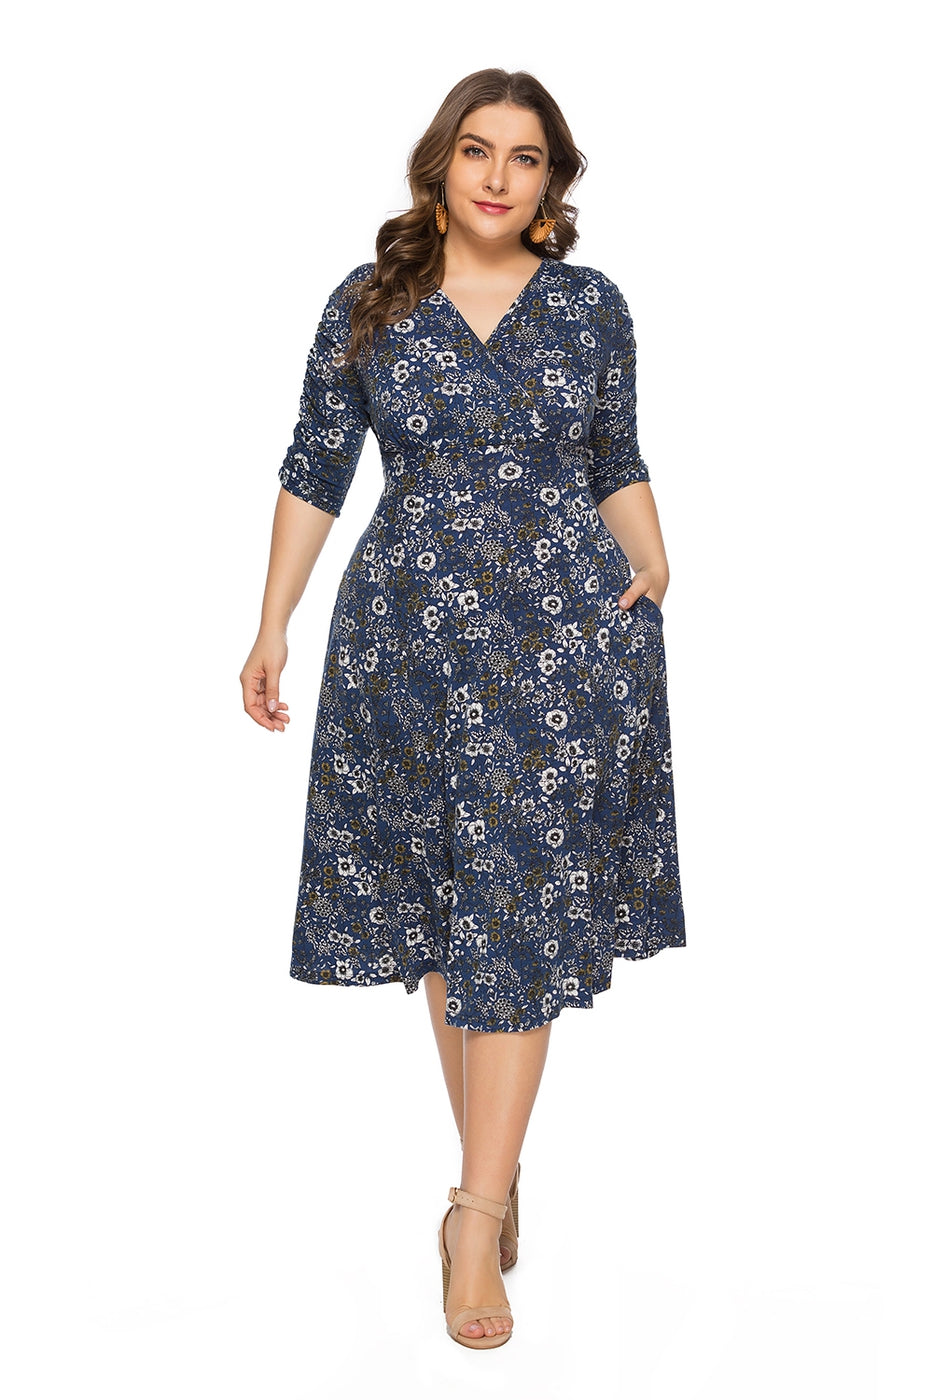 The Miele Casual V-Neck Dress in Blue